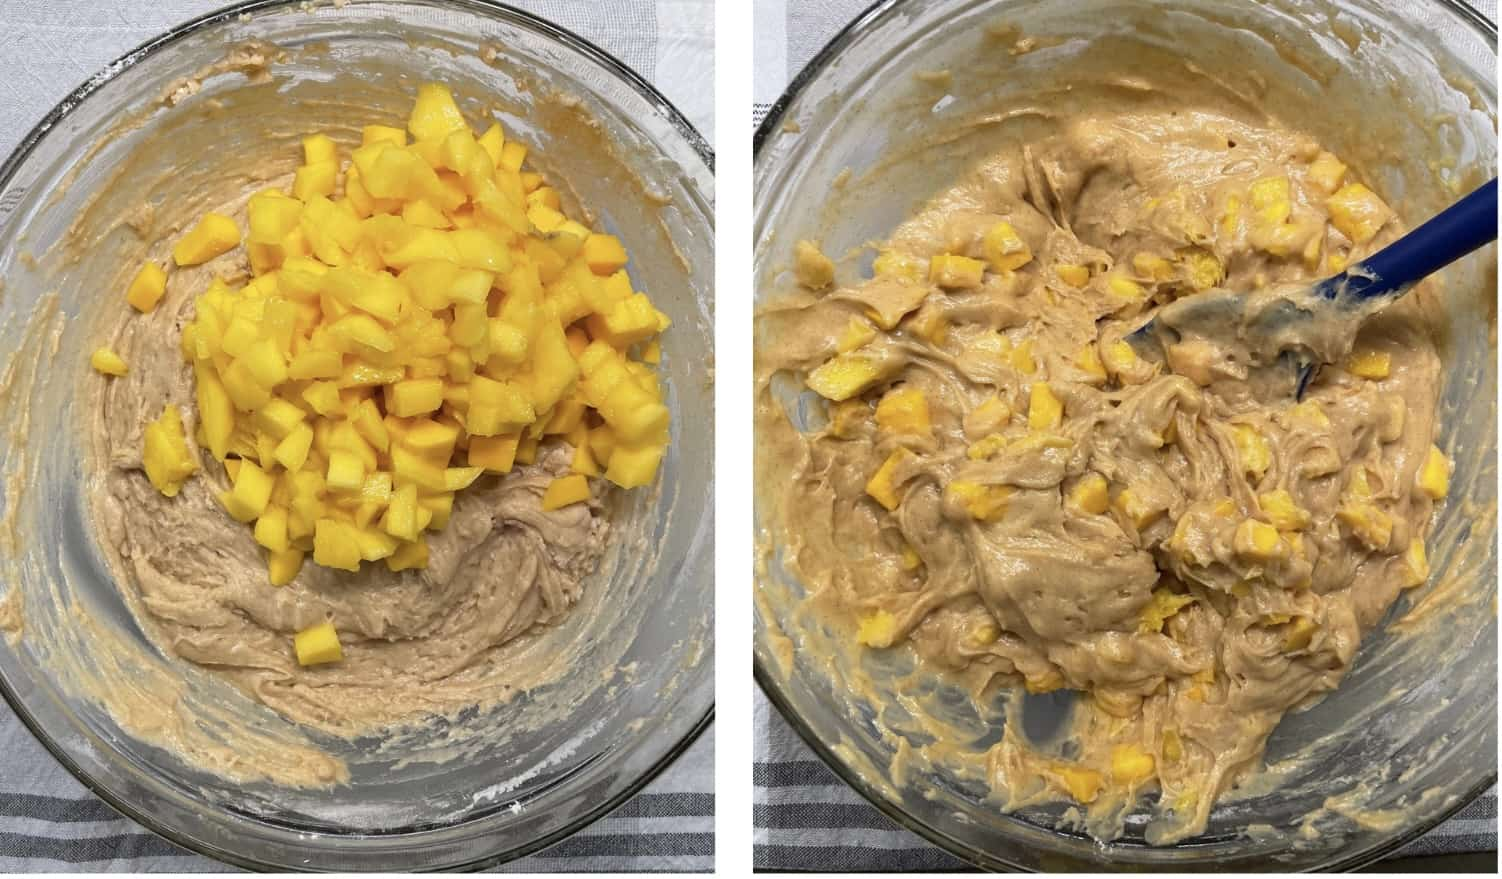 fold mangoes into the batter